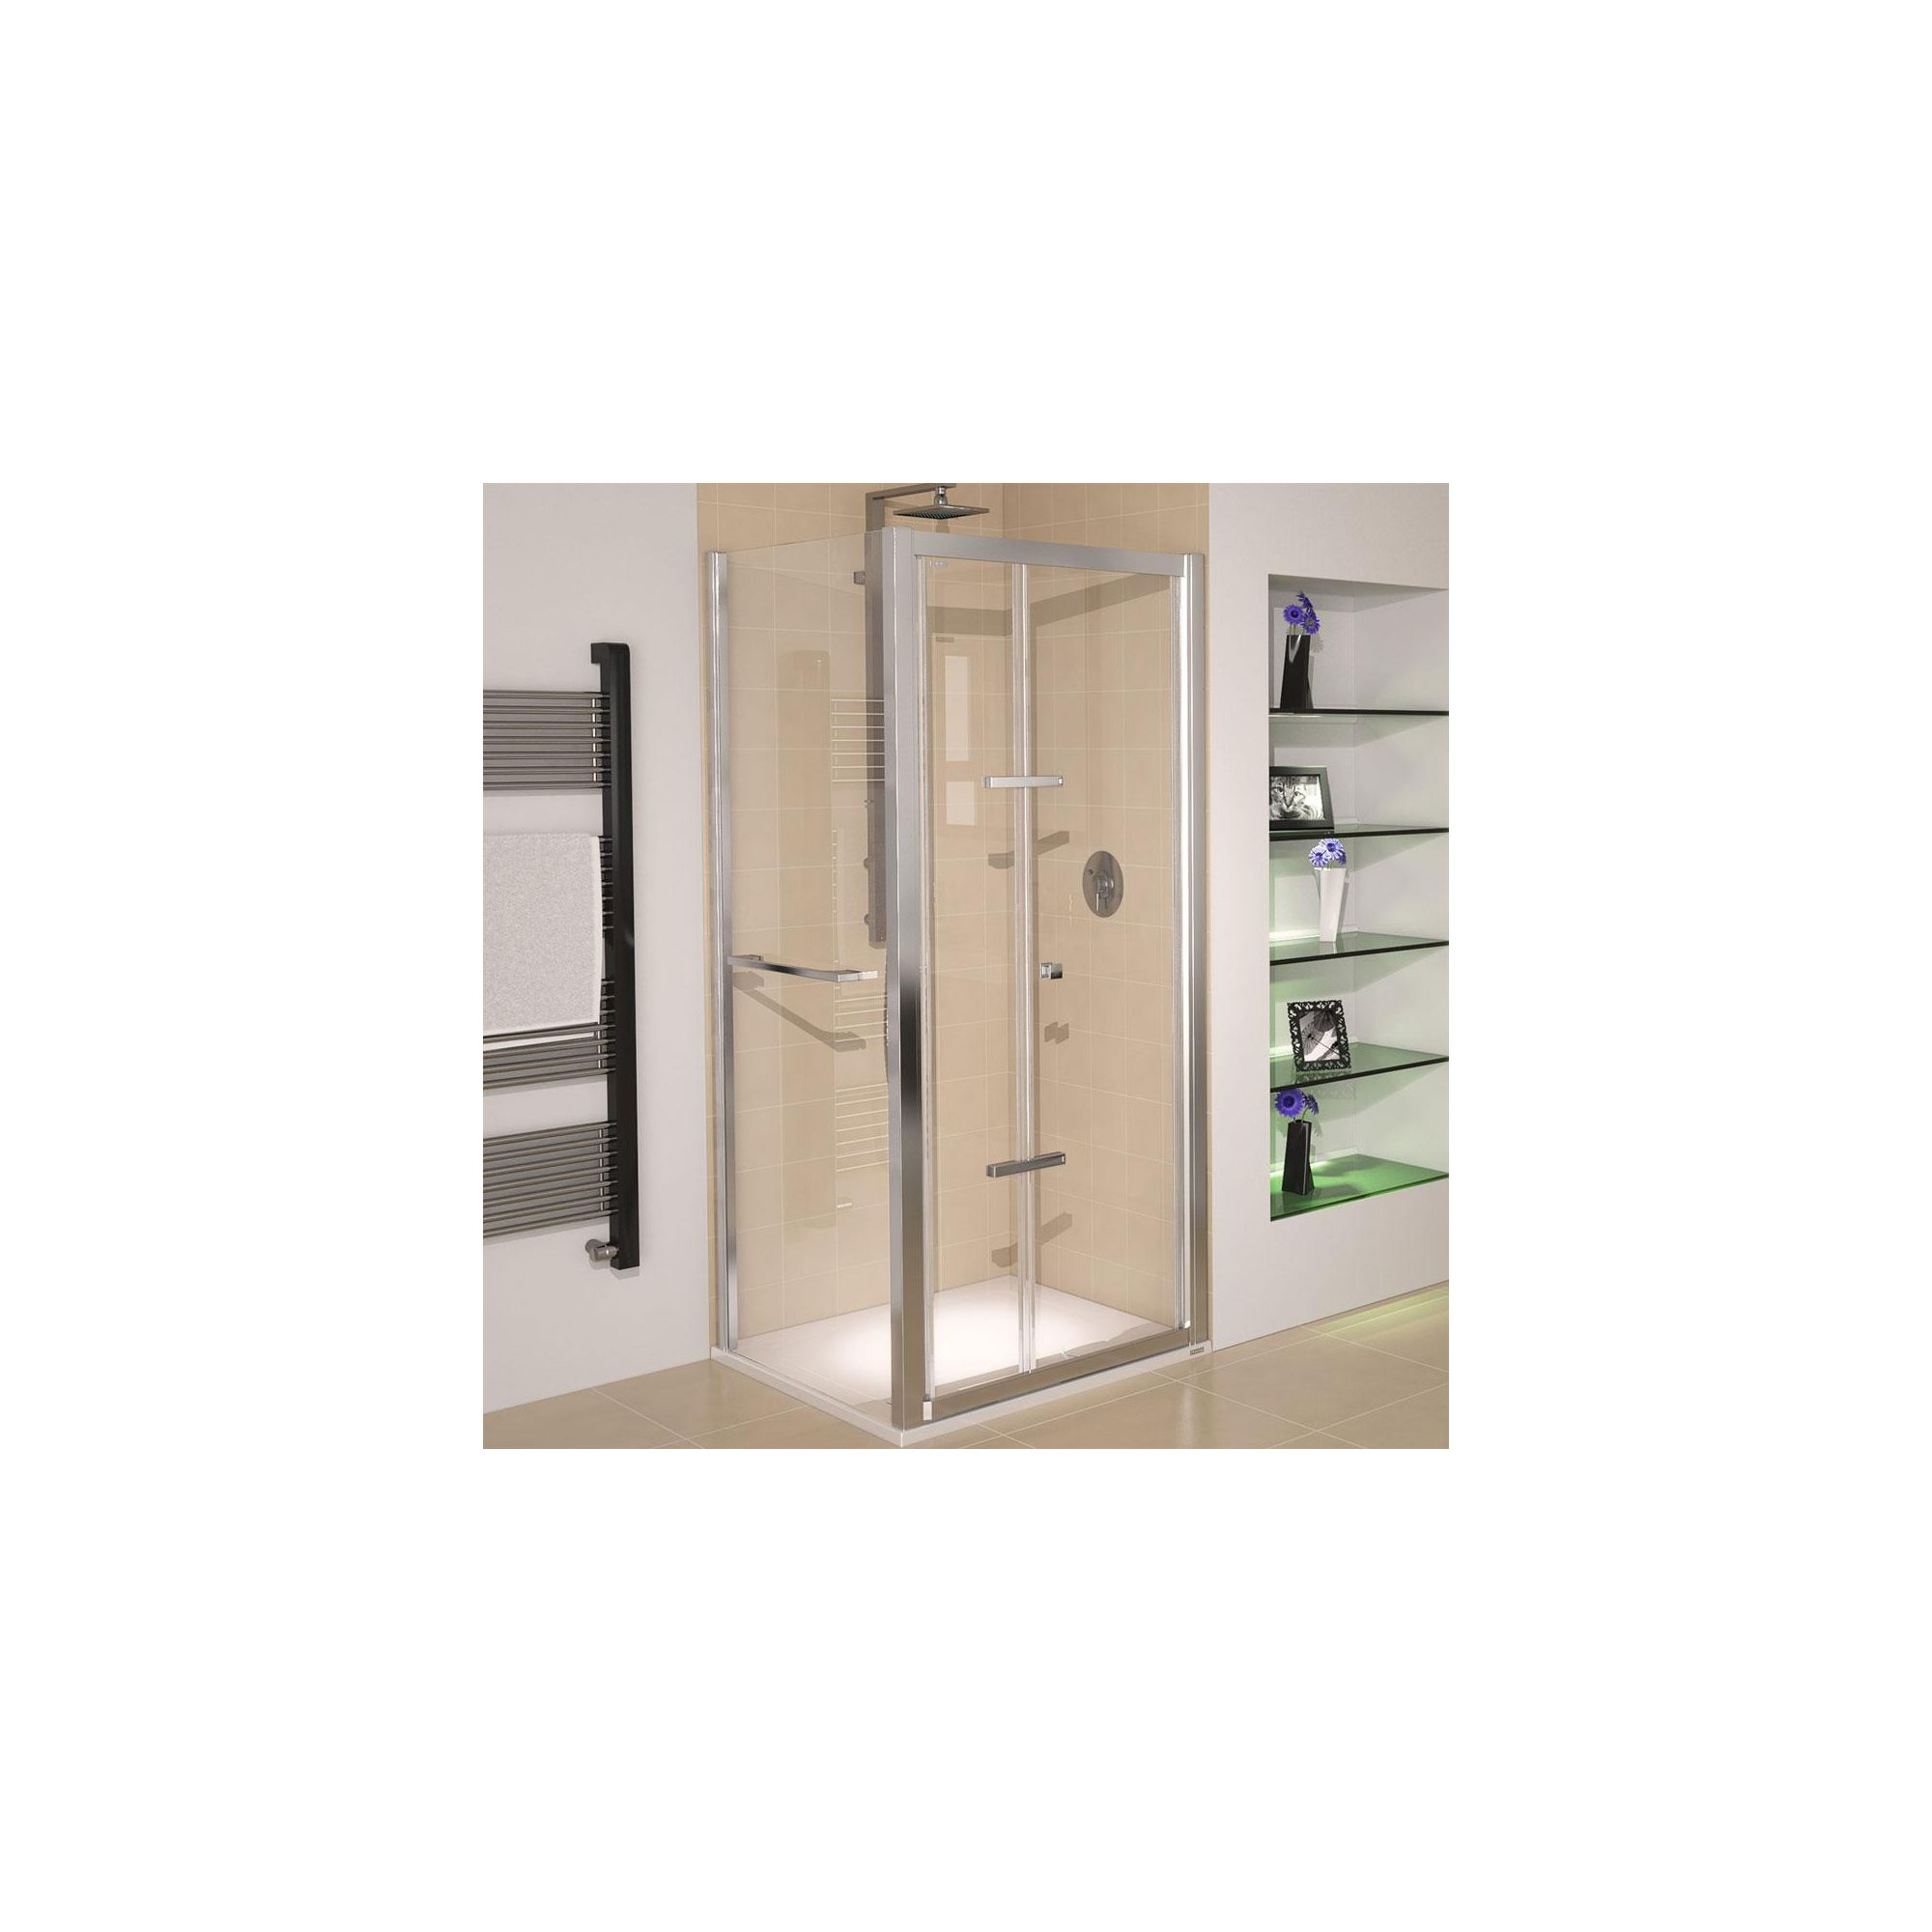 Aqualux AQUA8 Glide Bi-Fold Shower Door, 900mm Wide, Polished Silver Frame, 8mm Glass at Tesco Direct